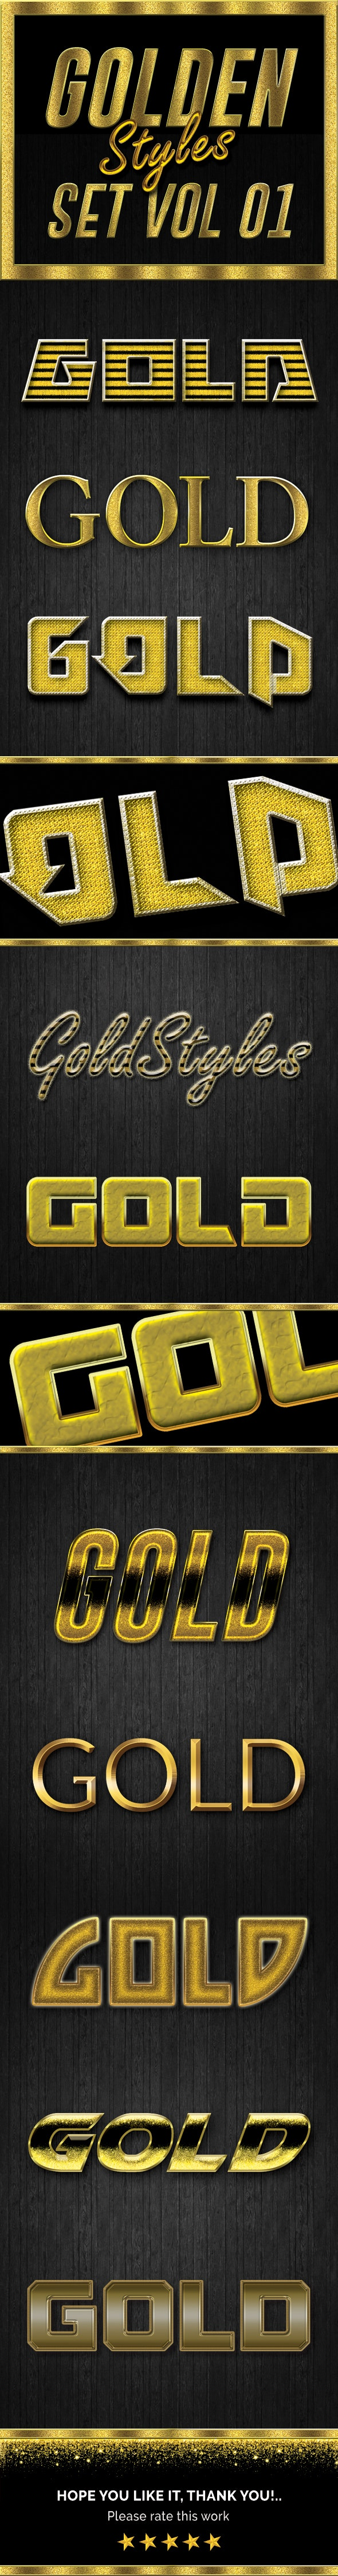 Gold Photoshop Styles Vol 01 - Text Effects Styles